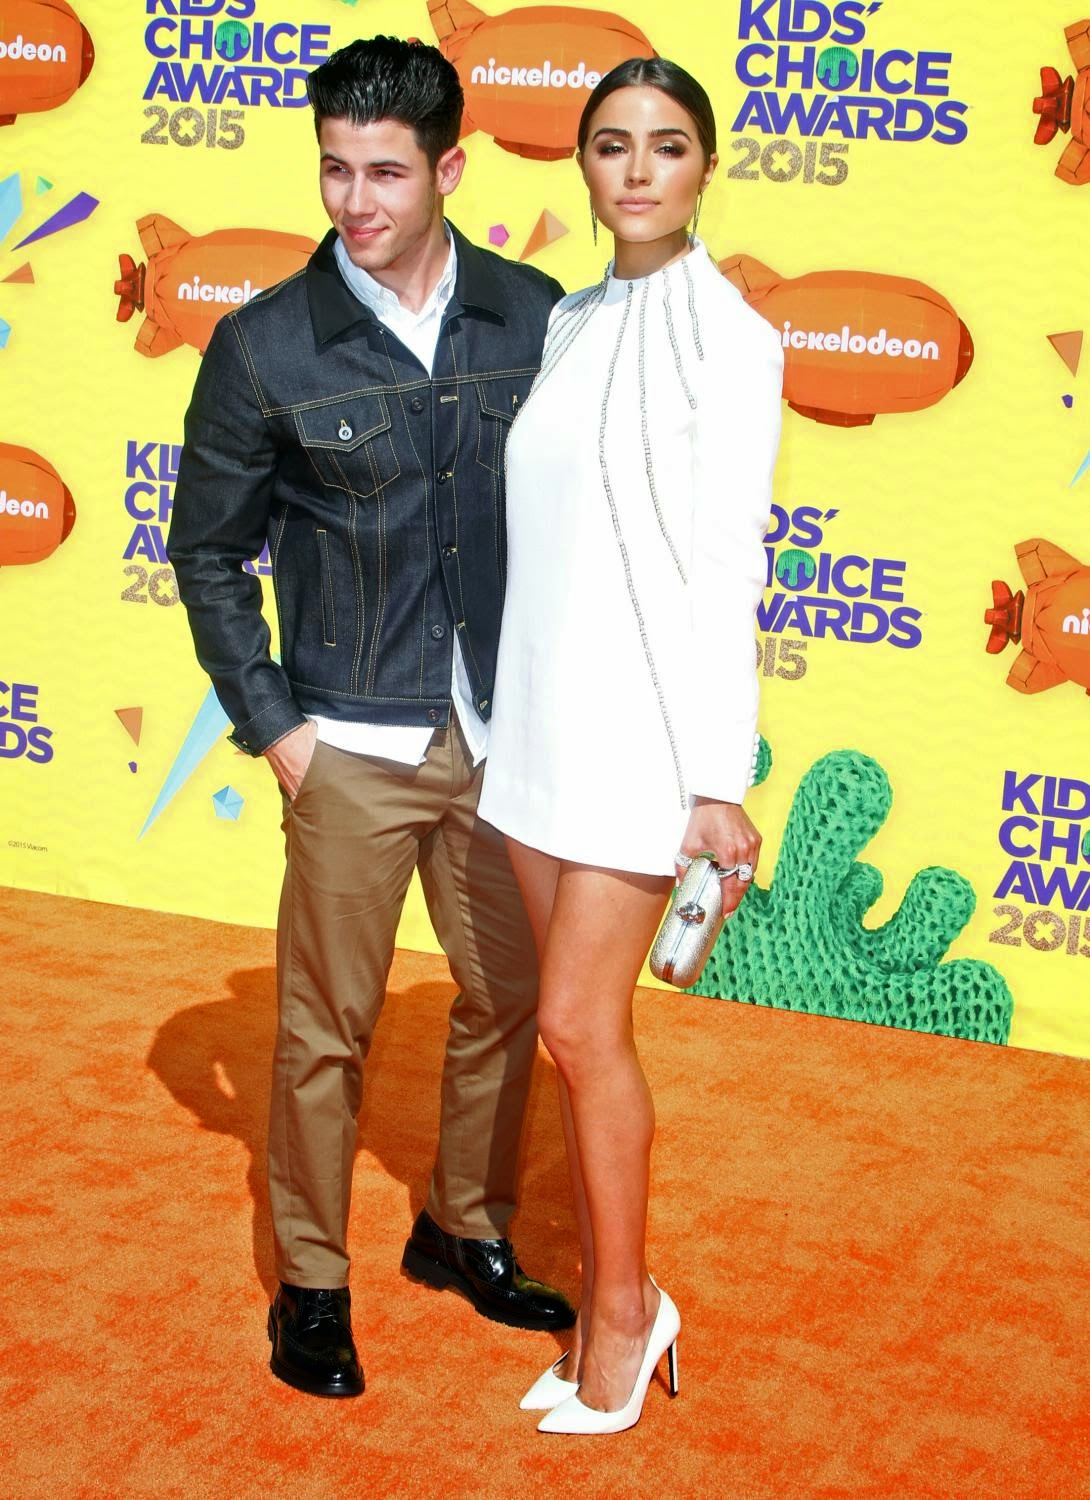 Nick Jonas and girlfriend Olivia Culpo at The 28th Annual Kid's Choice Awards